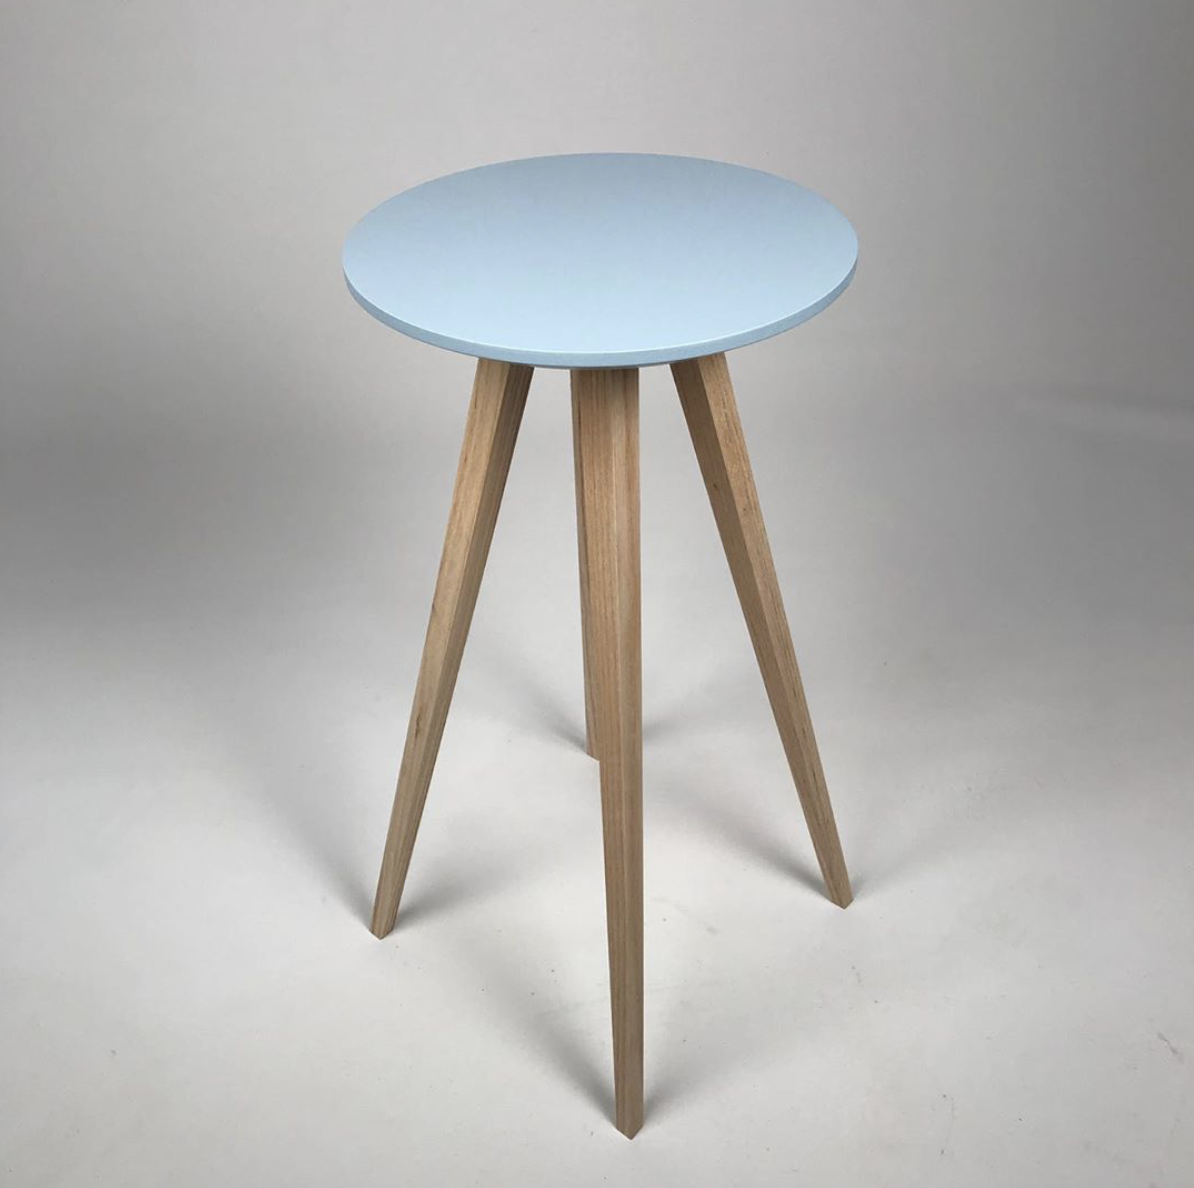 Second Year Side Table Project